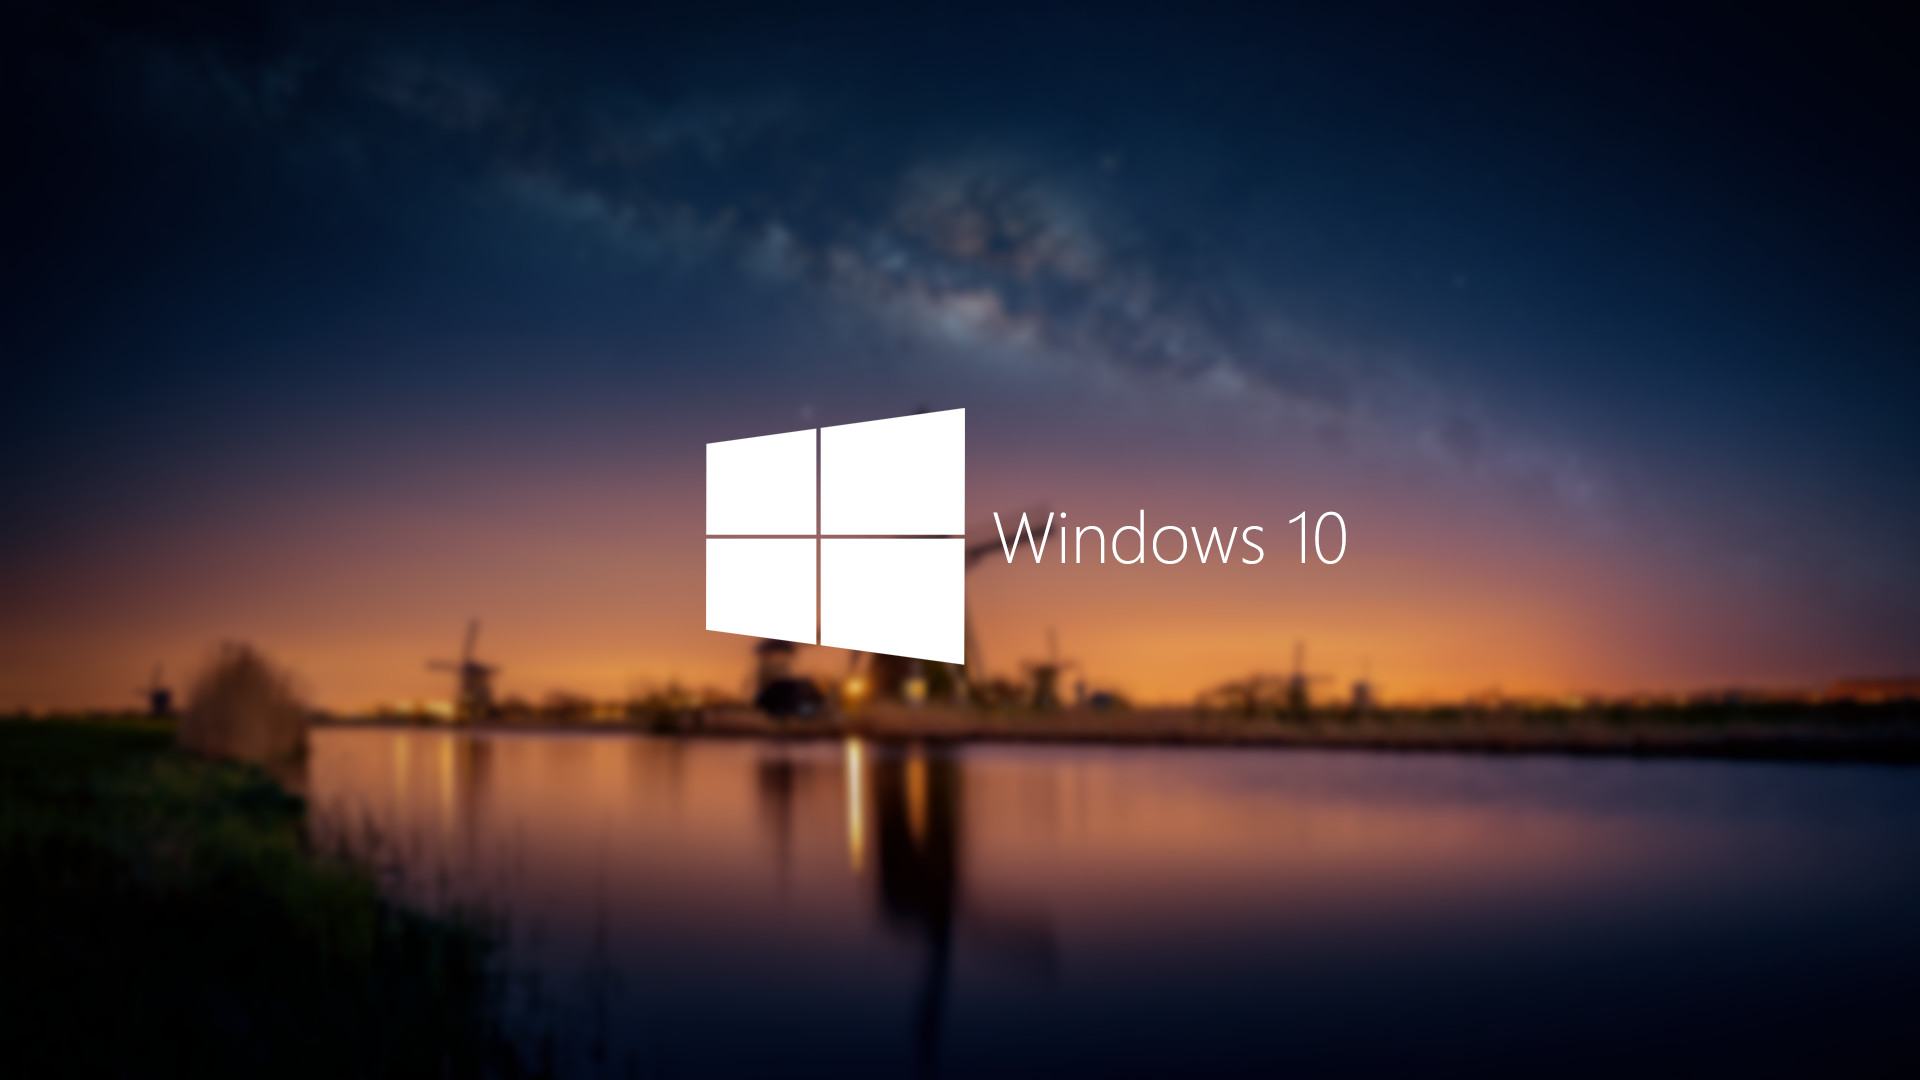 1920x1080 Windows 10 1440x900 Images, Windows 10 1440x900 Wallpapers - Marcel Ponte